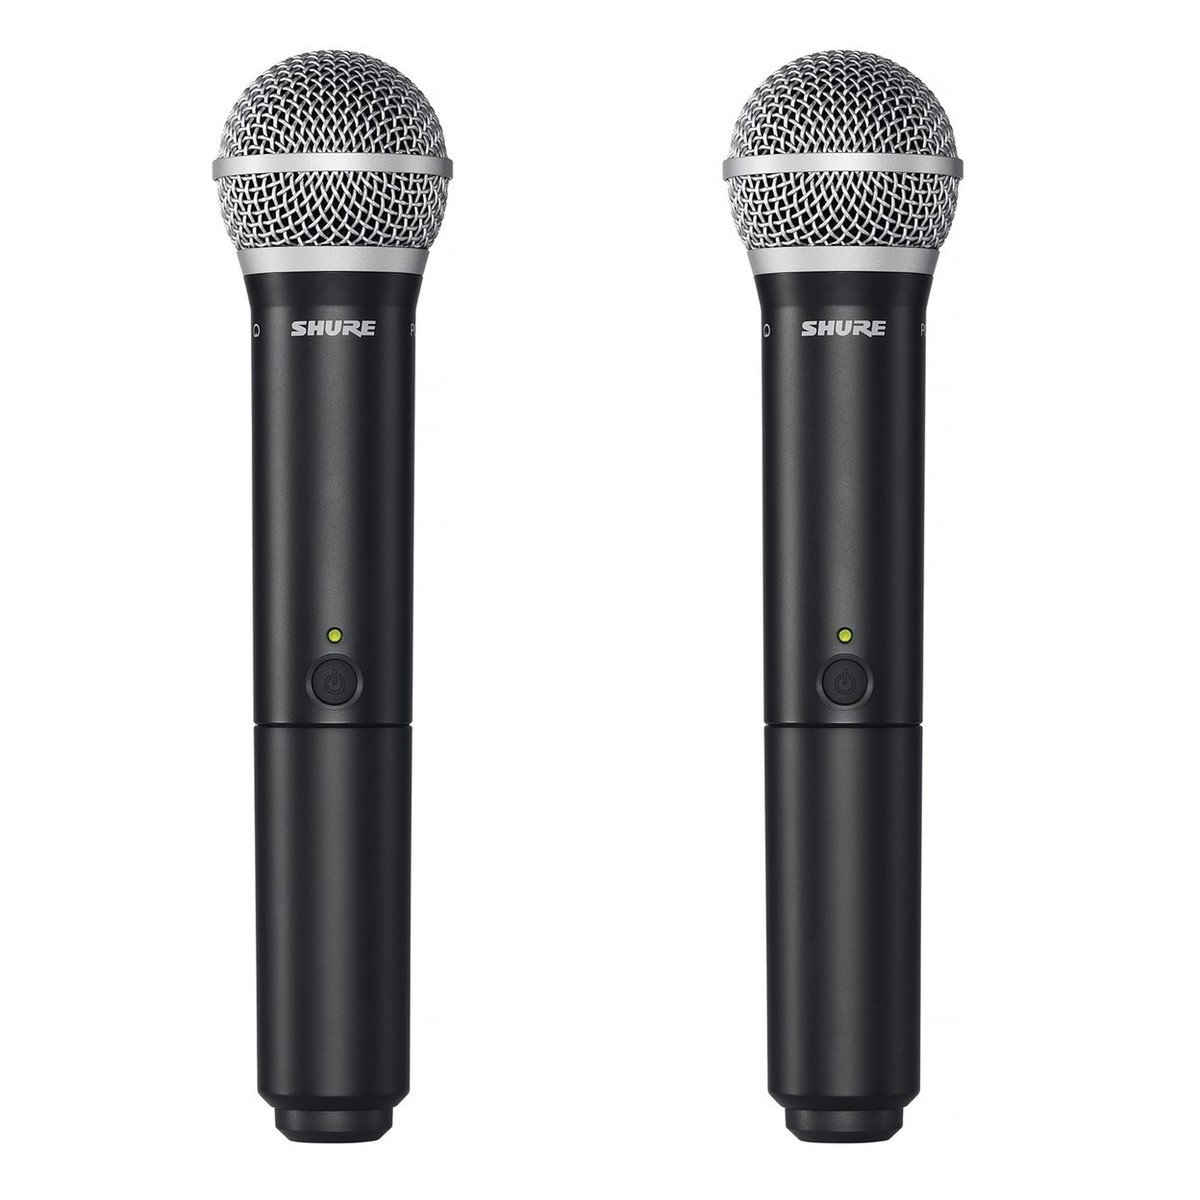 shure blx288e pg58 dual handheld wireless microphone system m17 band at gear4music. Black Bedroom Furniture Sets. Home Design Ideas